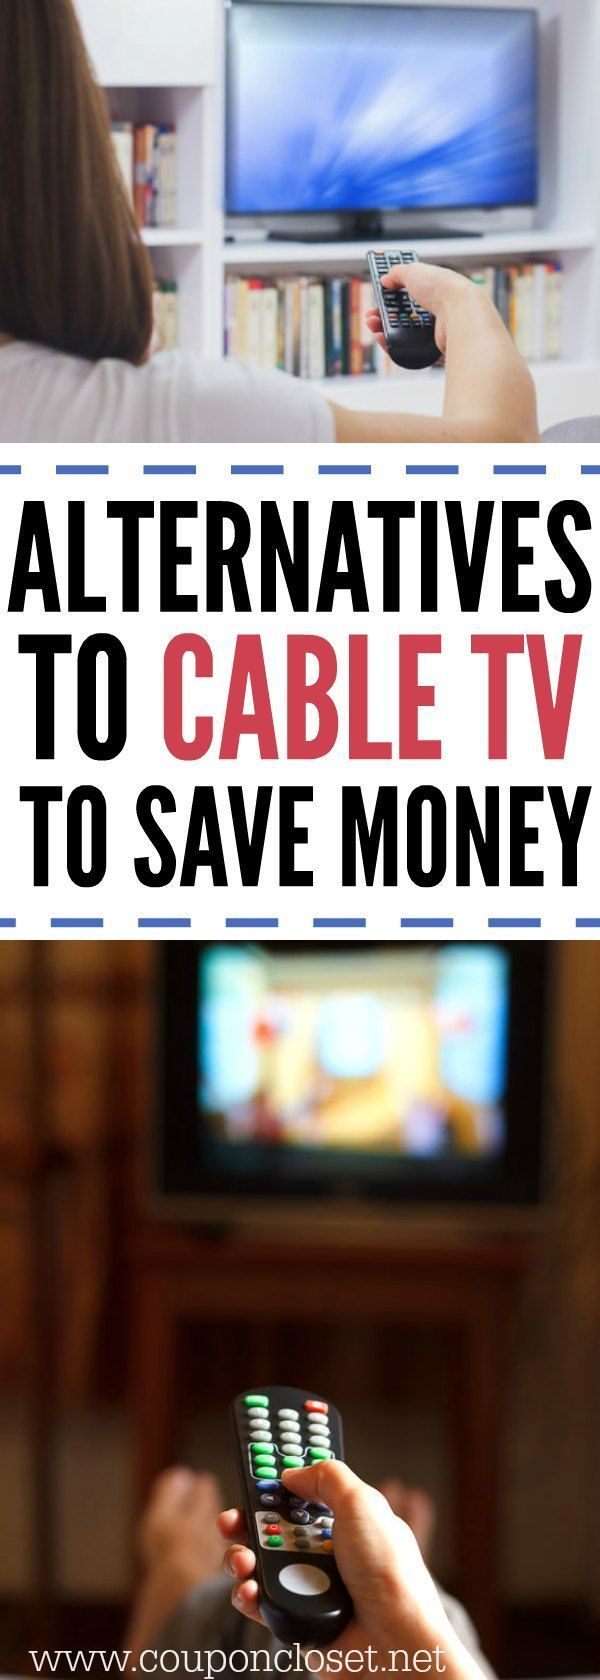 Alternatives to Cable TV . Here are some easy Tips to Cutting Cable TV so you can save money every month.